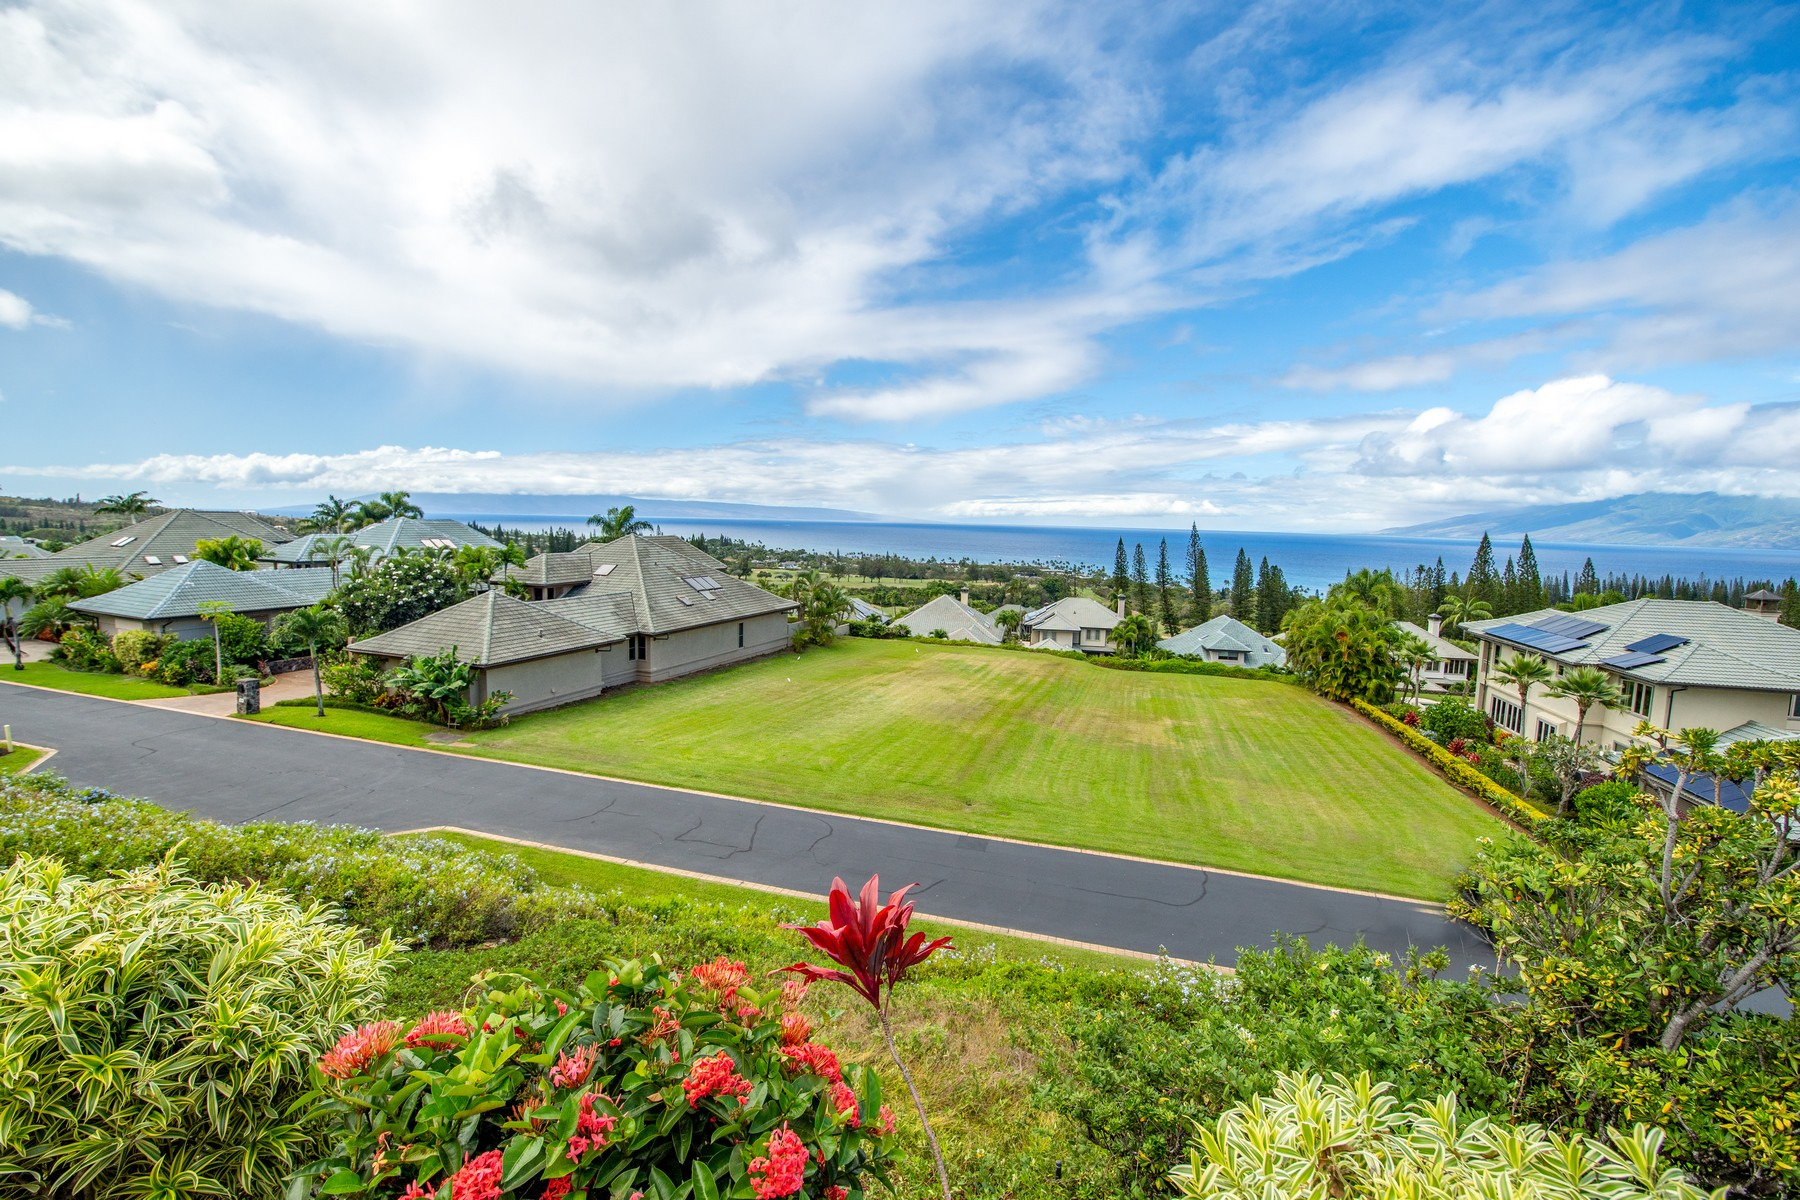 Land for Sale at Pineapple Hill Lot 308 Cook Pine Dr Kapalua, Hawaii 96761 United States